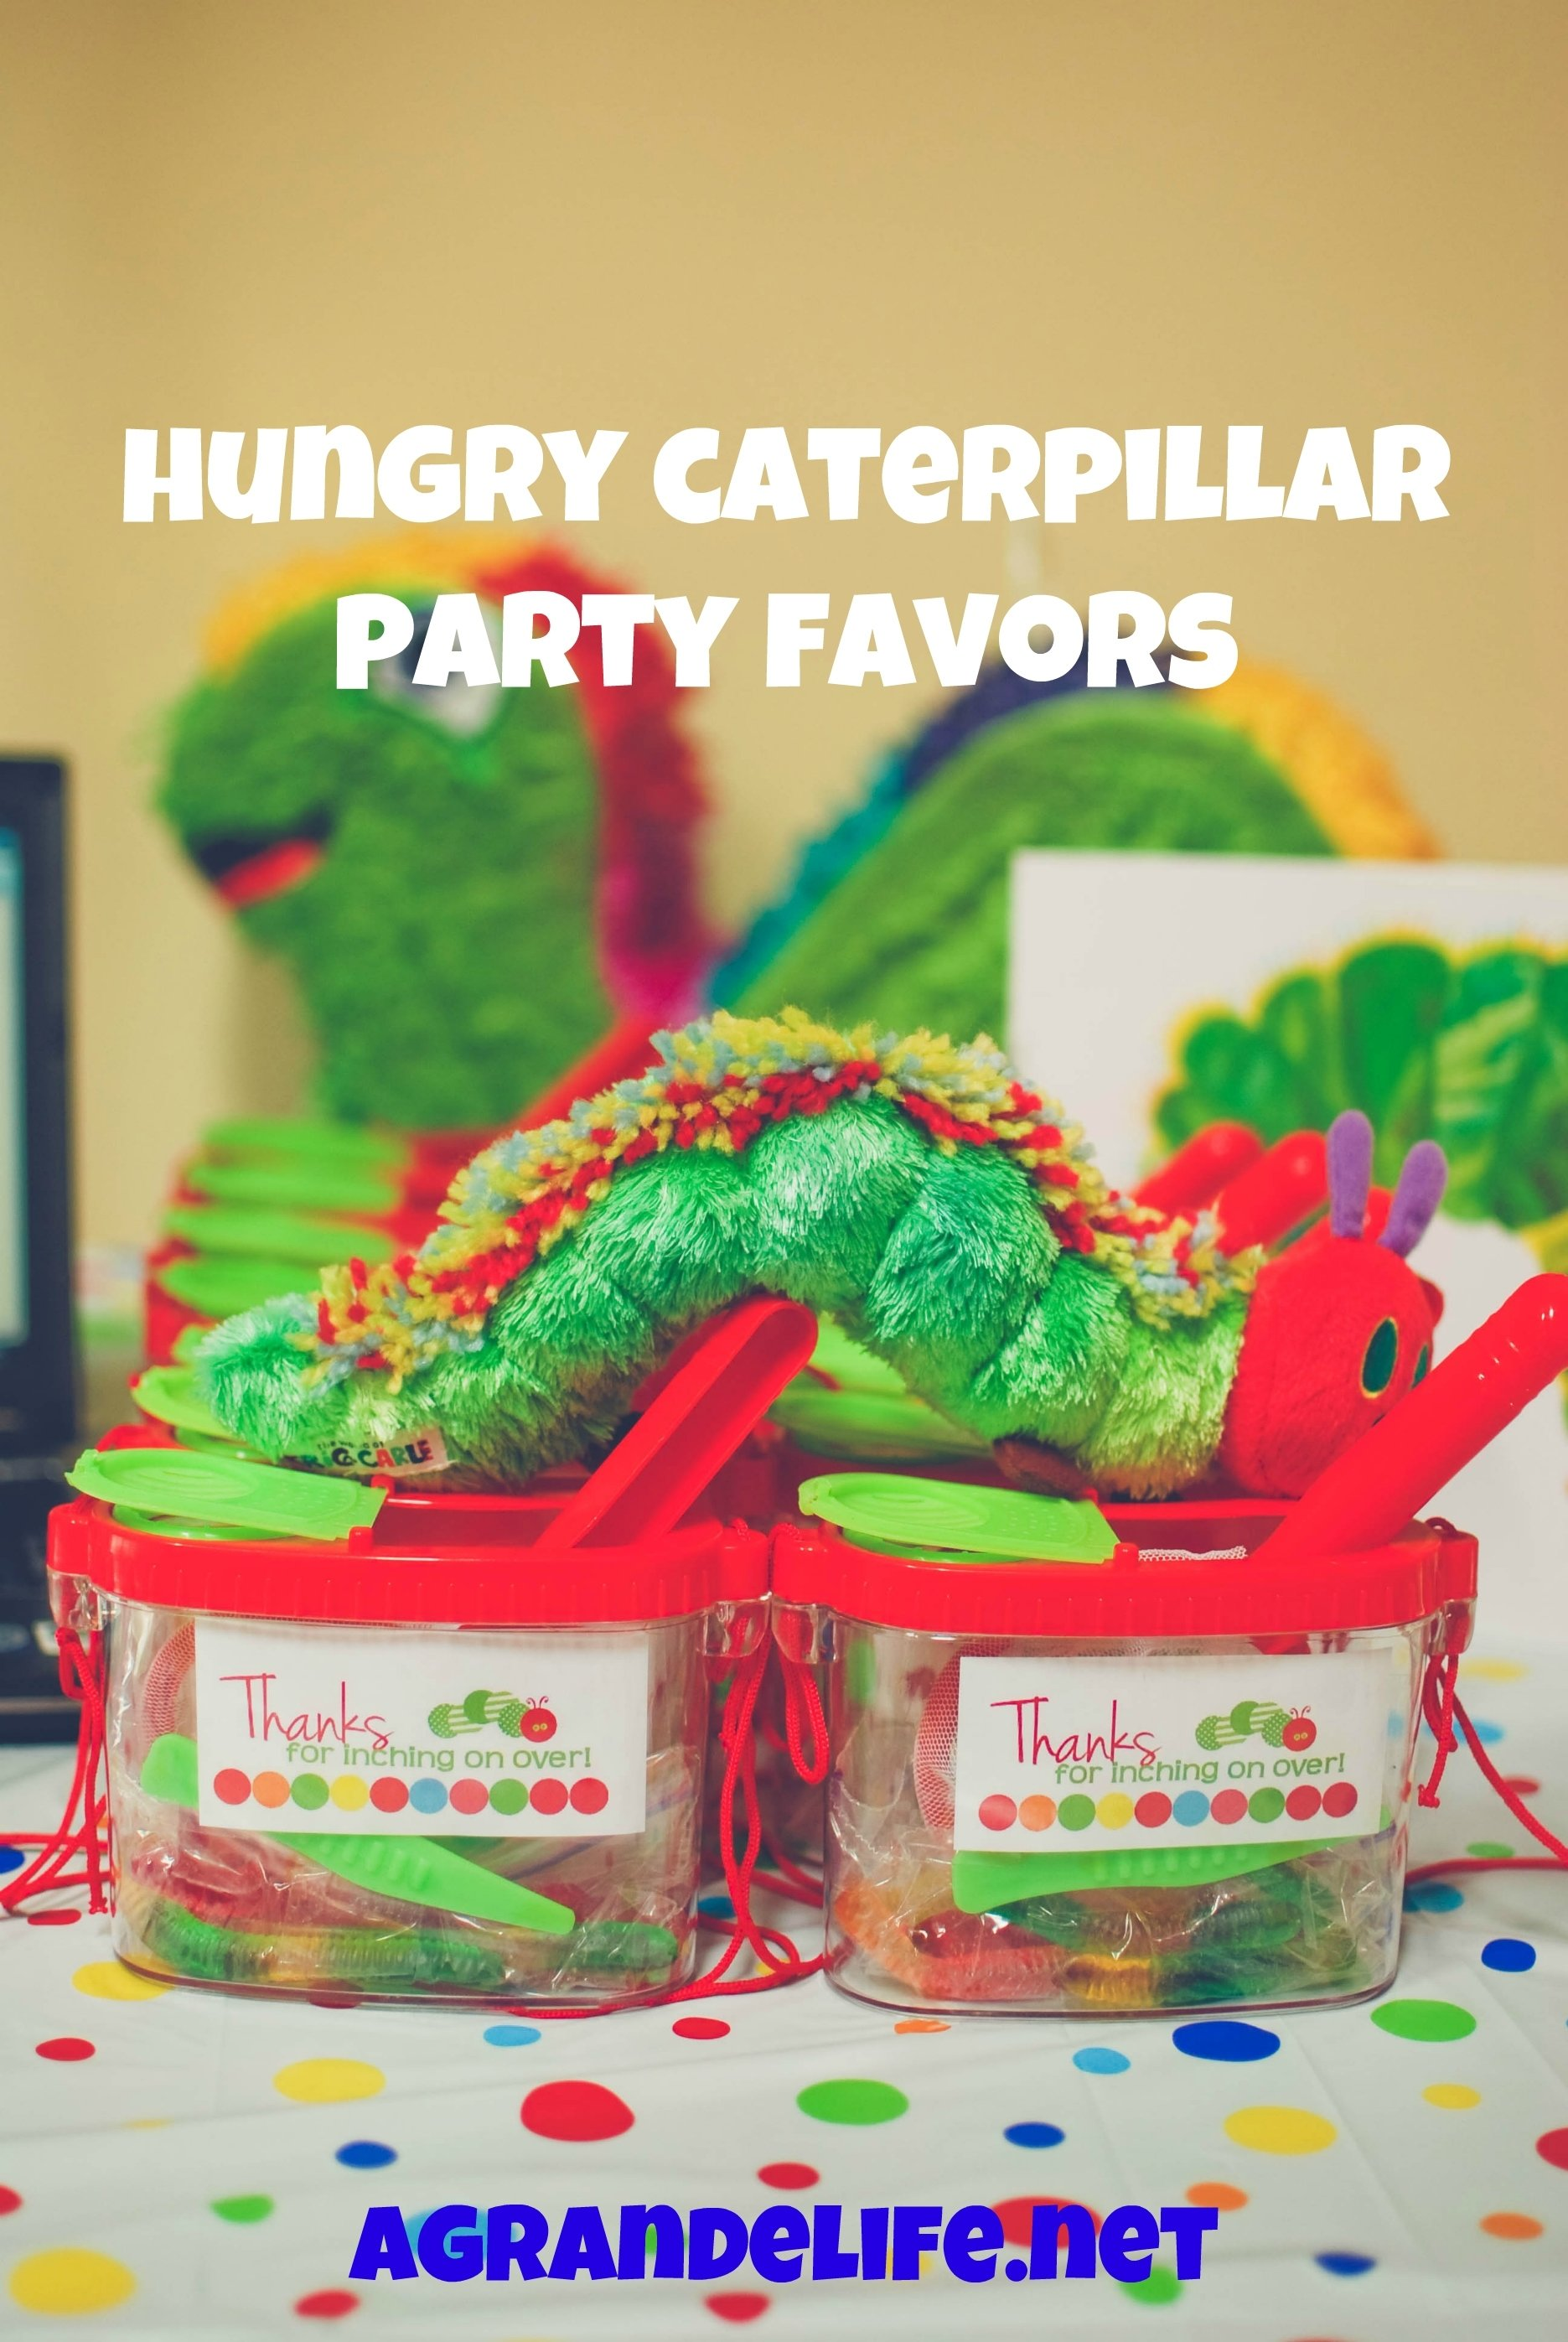 10 Attractive The Very Hungry Caterpillar Party Ideas a very hungry caterpillar birthday party 2020